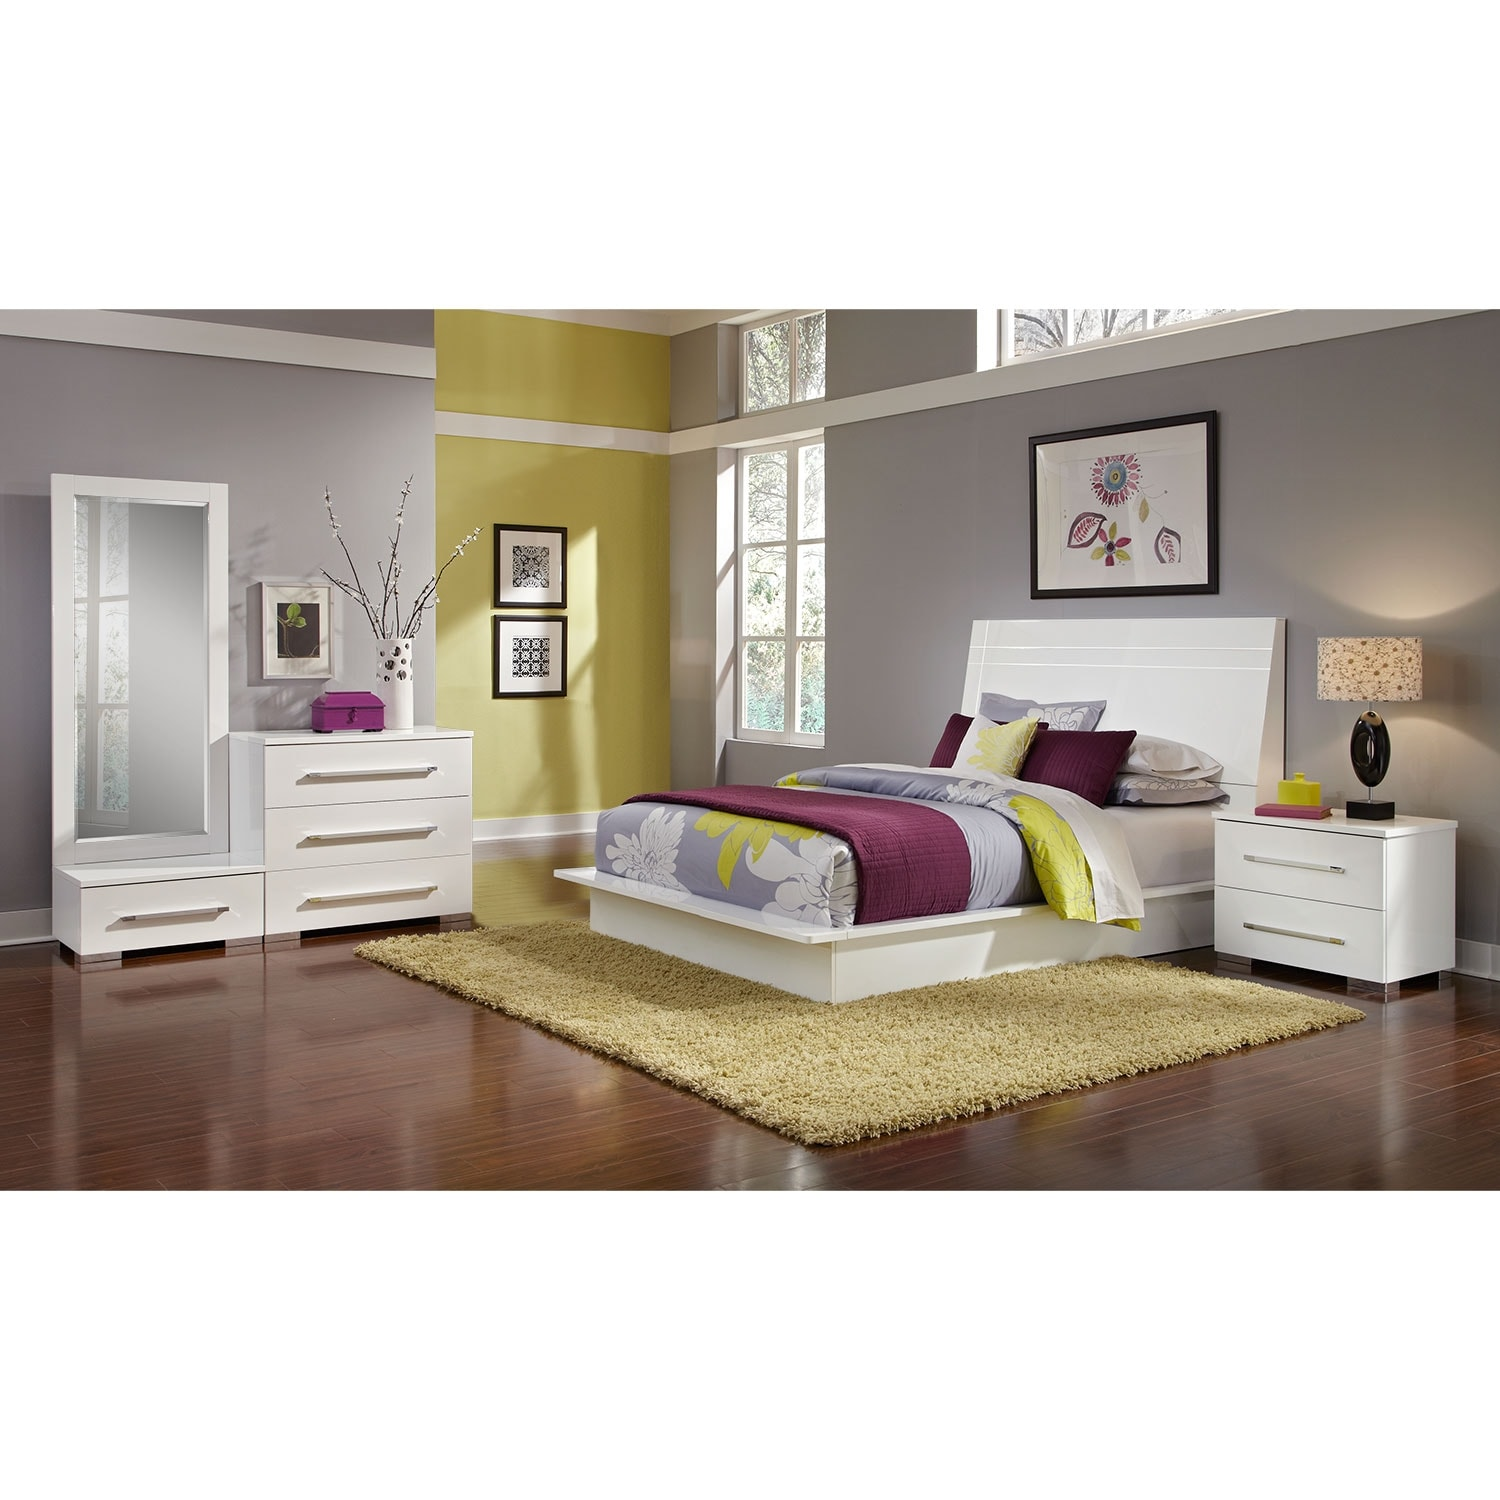 Bedroom Furniture - Dimora White II 6 Pc. Queen Bedroom (Alternate)